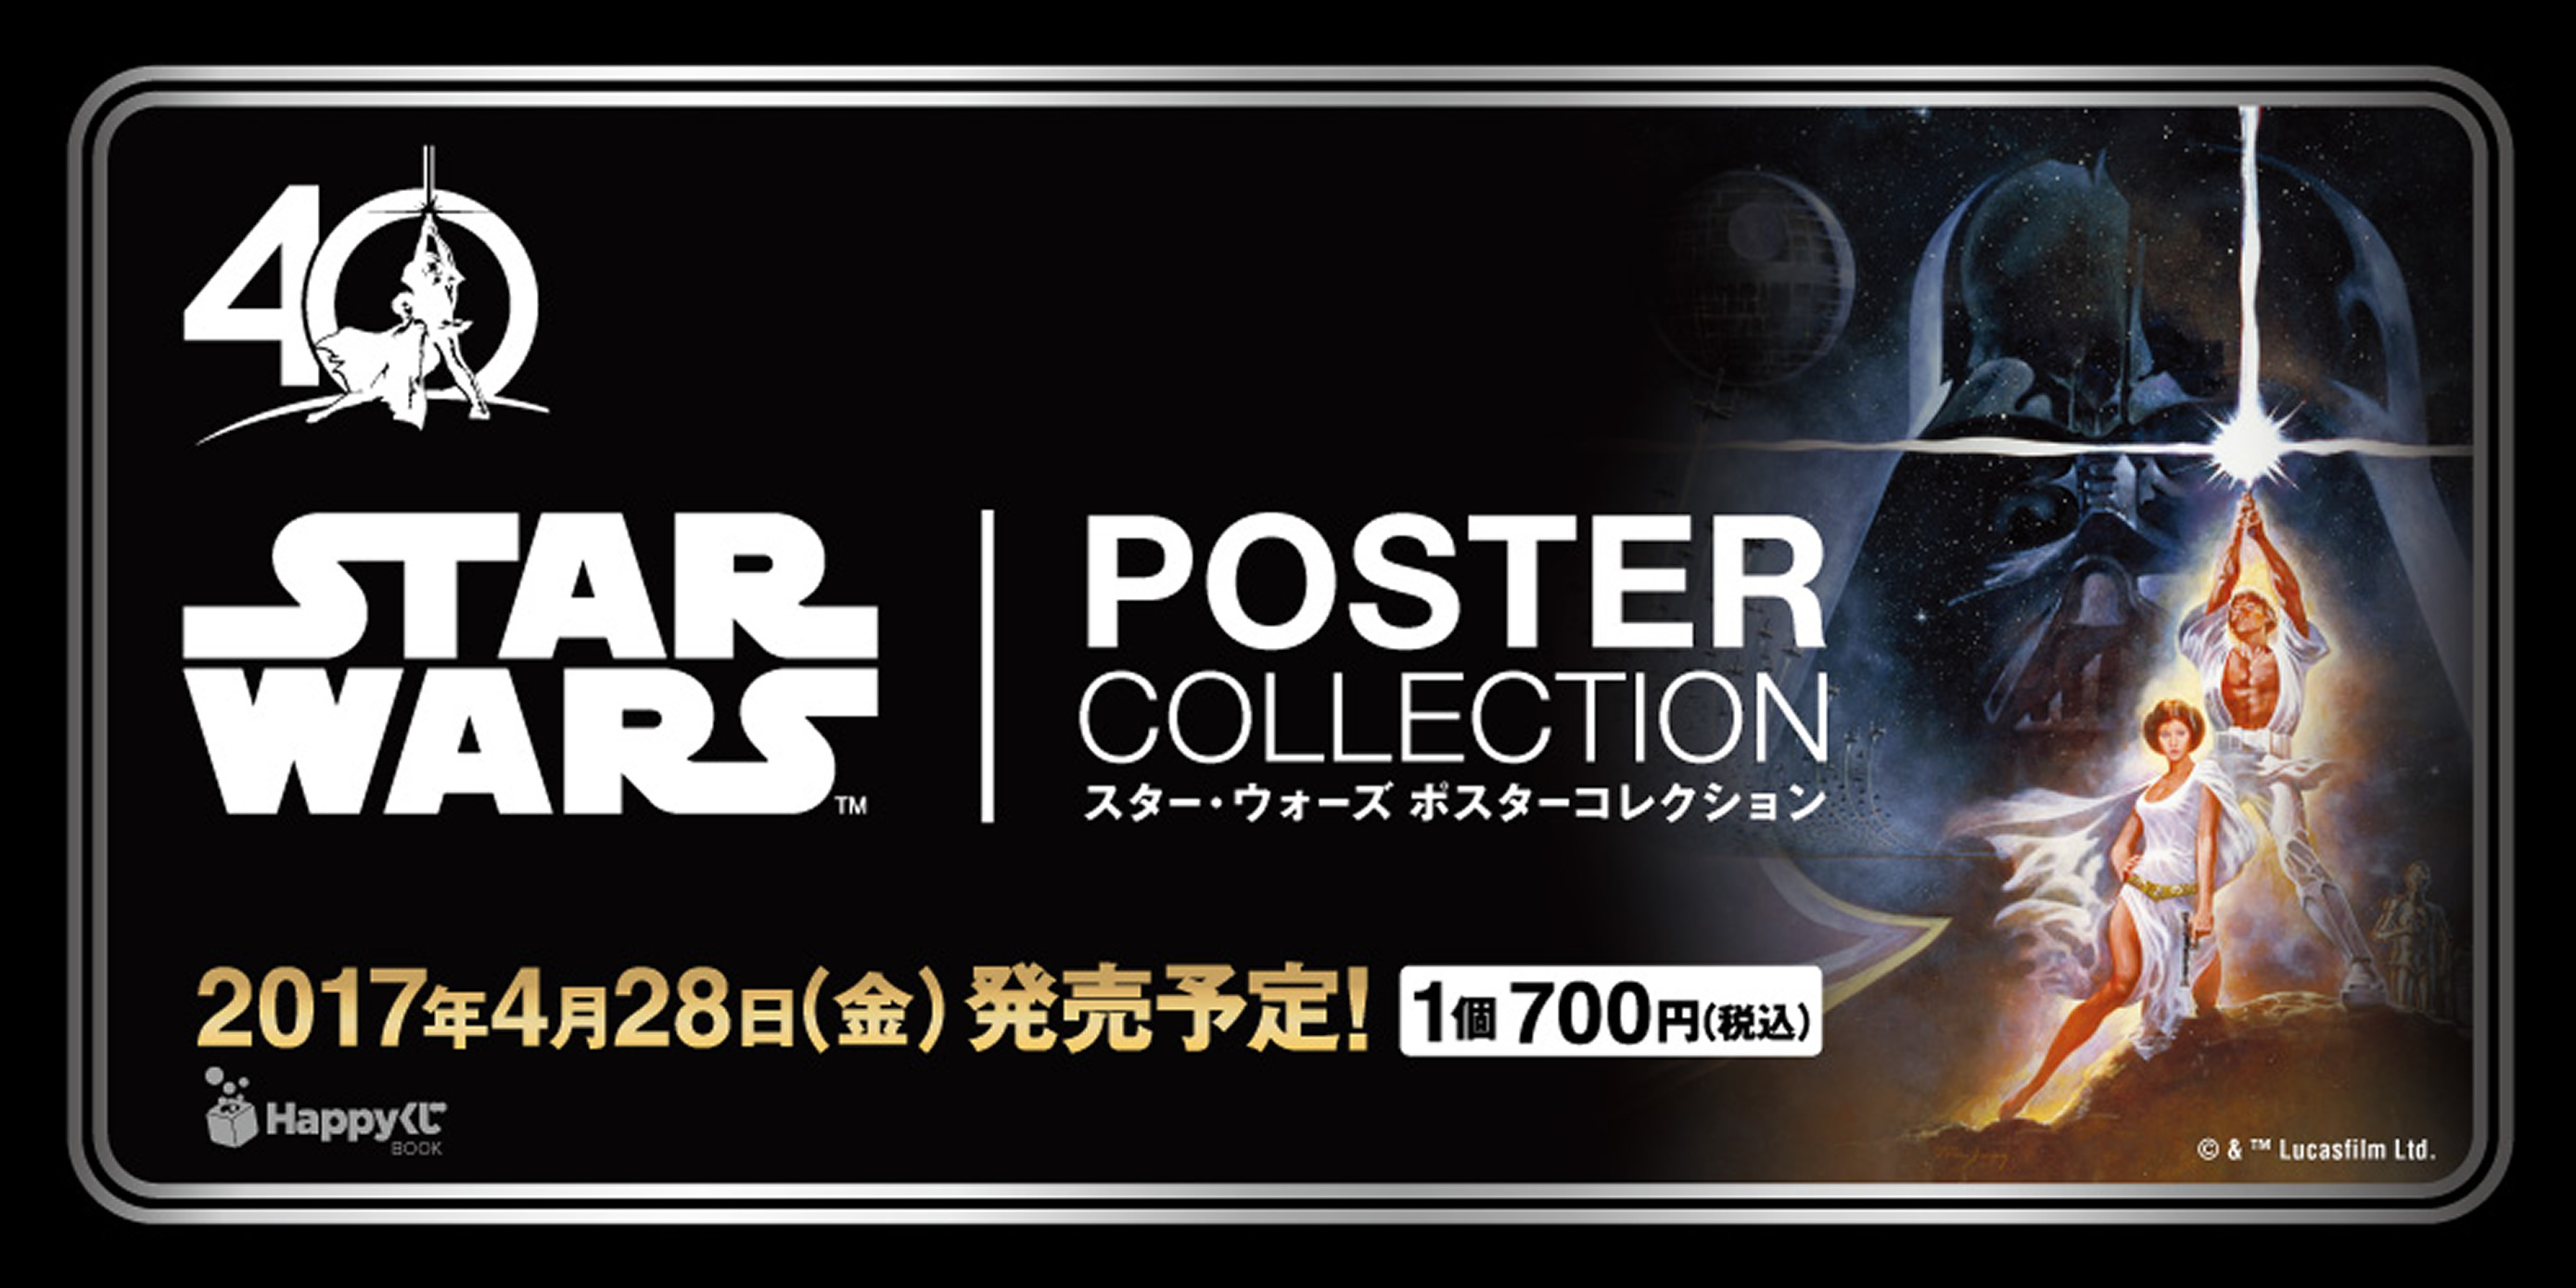 STAR WARS POSTER COLLECTION 2016年4月28日(金)発売予定!